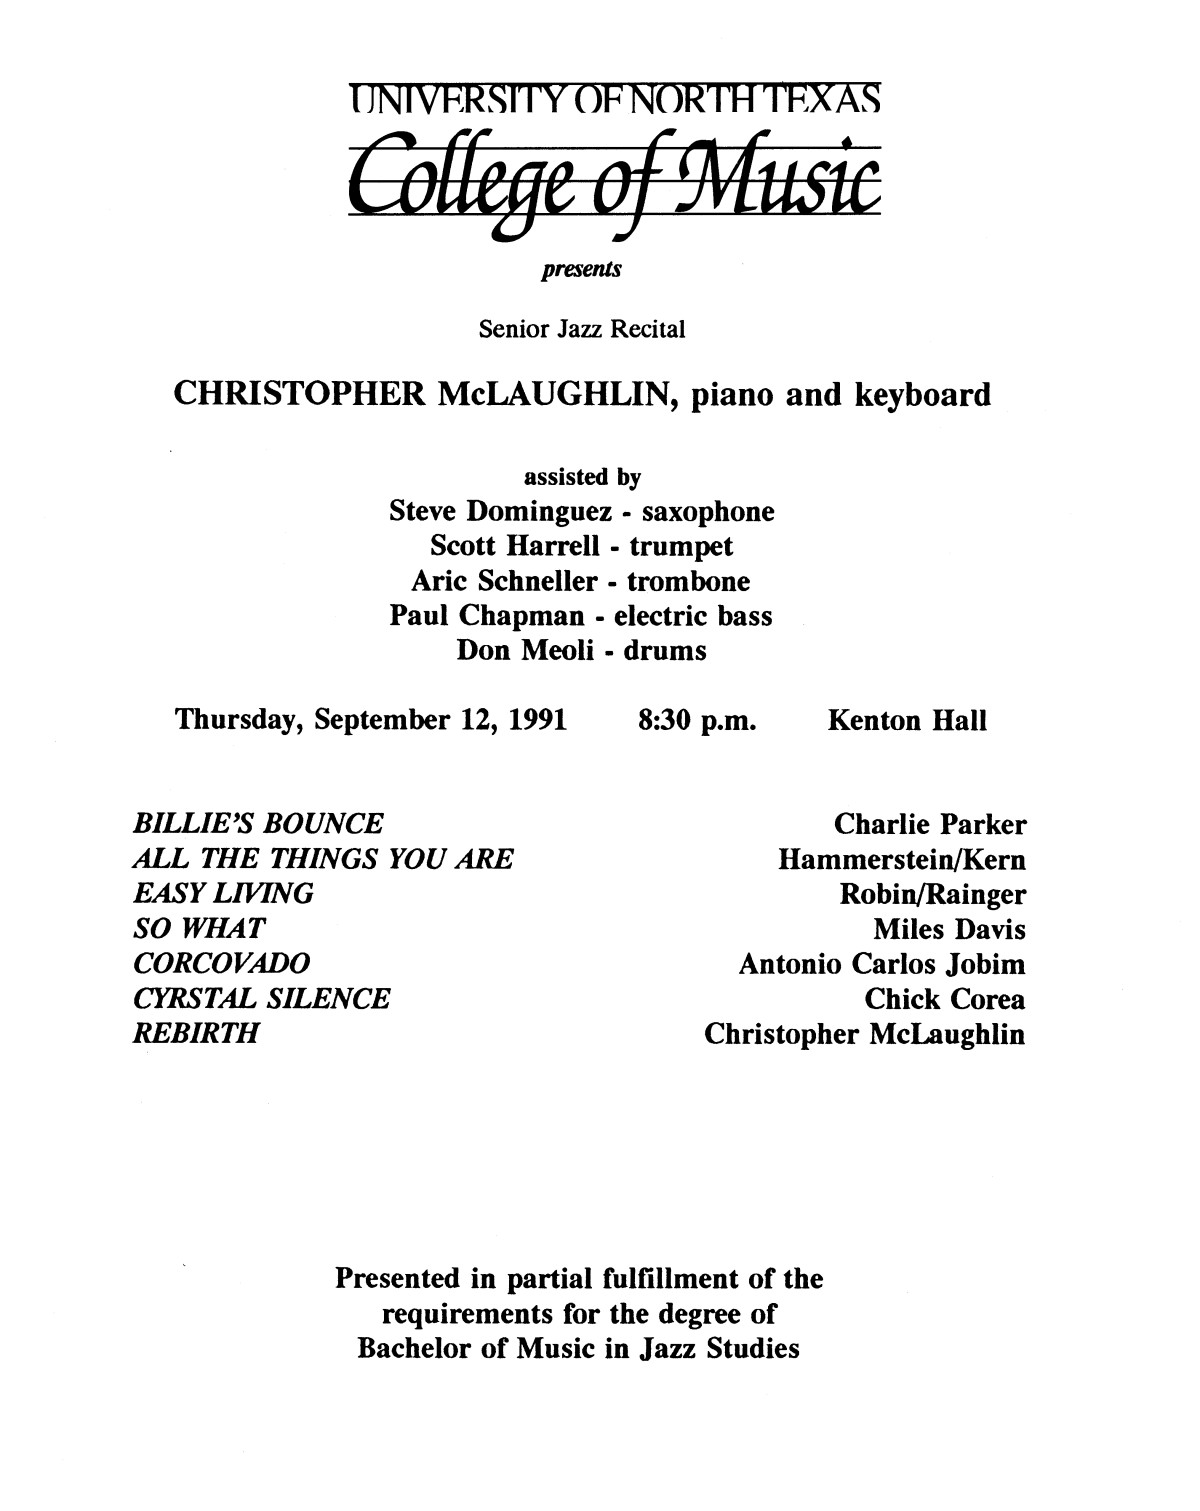 College of Music program book 1991-1992 Student Performances Vol. 2                                                                                                      [Sequence #]: 9 of 310